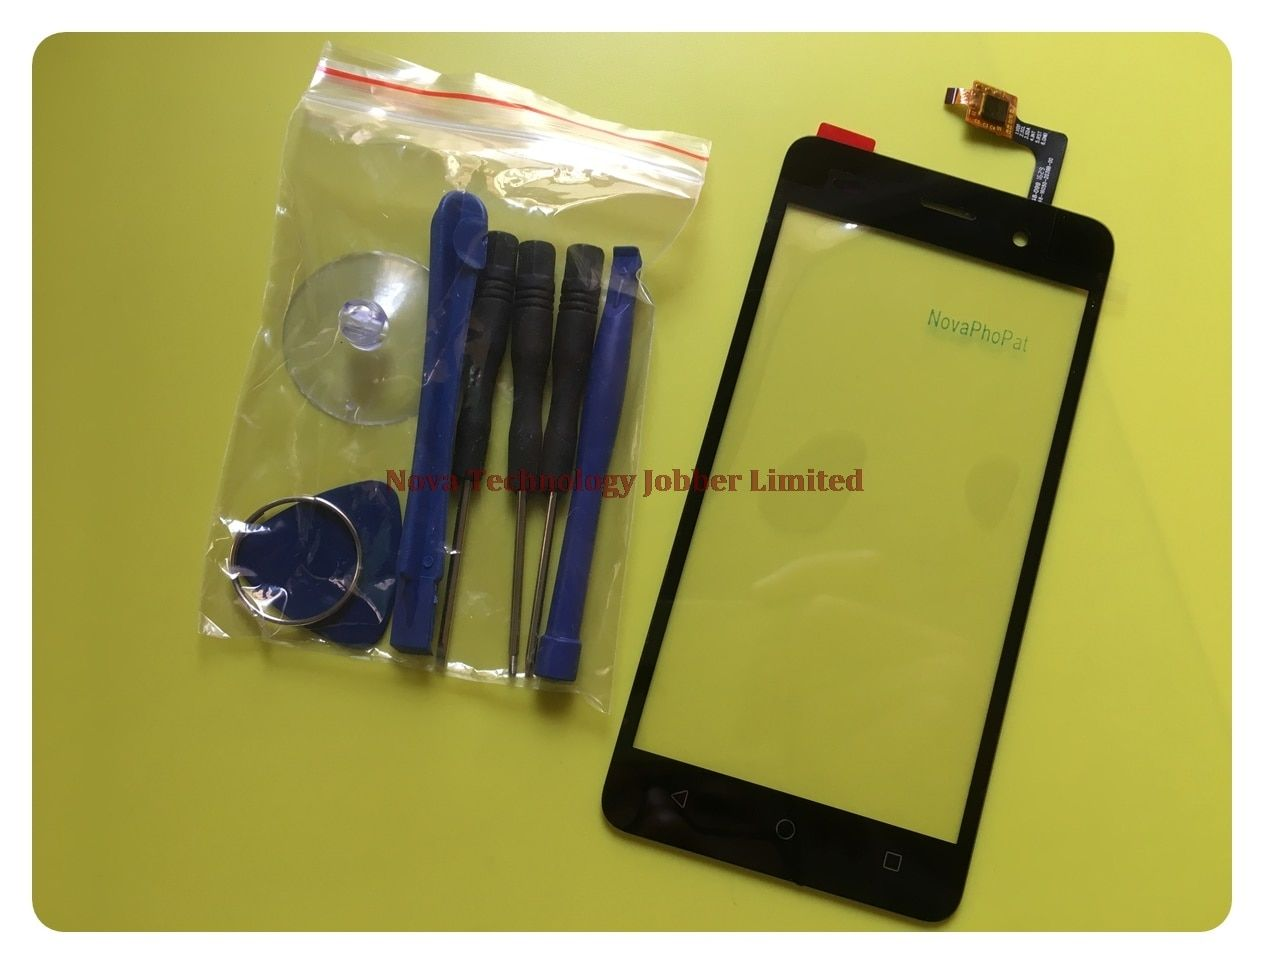 Wyieno Pacific E Sensor Phone Replacement Parts For Oysters Pacific E Touch Screen Digitizer Glass Panel